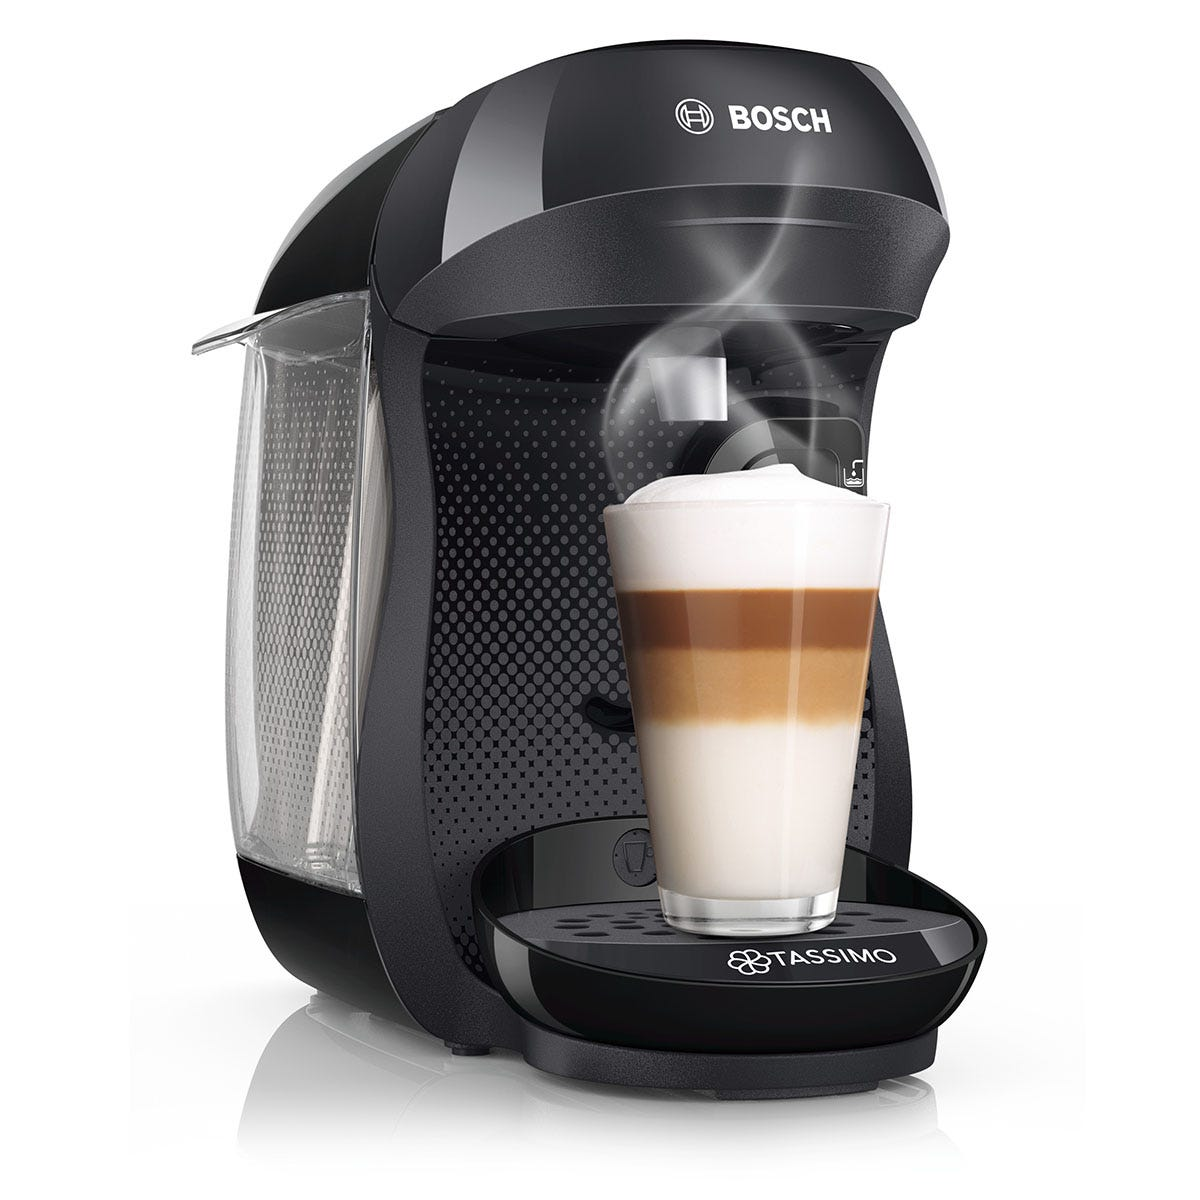 Bosch Tassimo Happy Pod Coffee Machine - Black